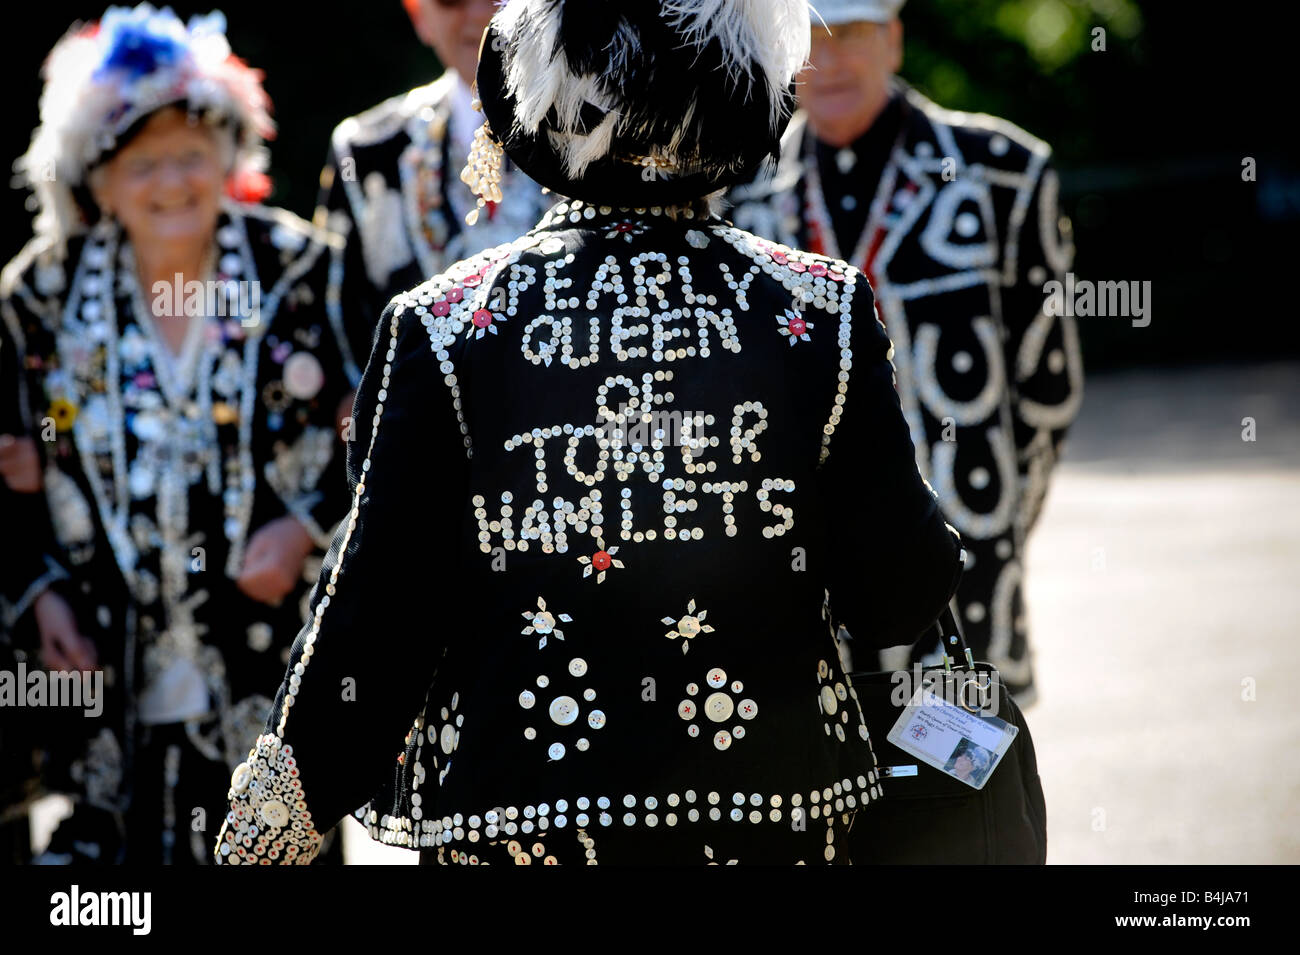 The London Pearly Kings & Queens Society: Back view of the Pearly Queen of Tower Hamlets walking towards fellow Stock Photo